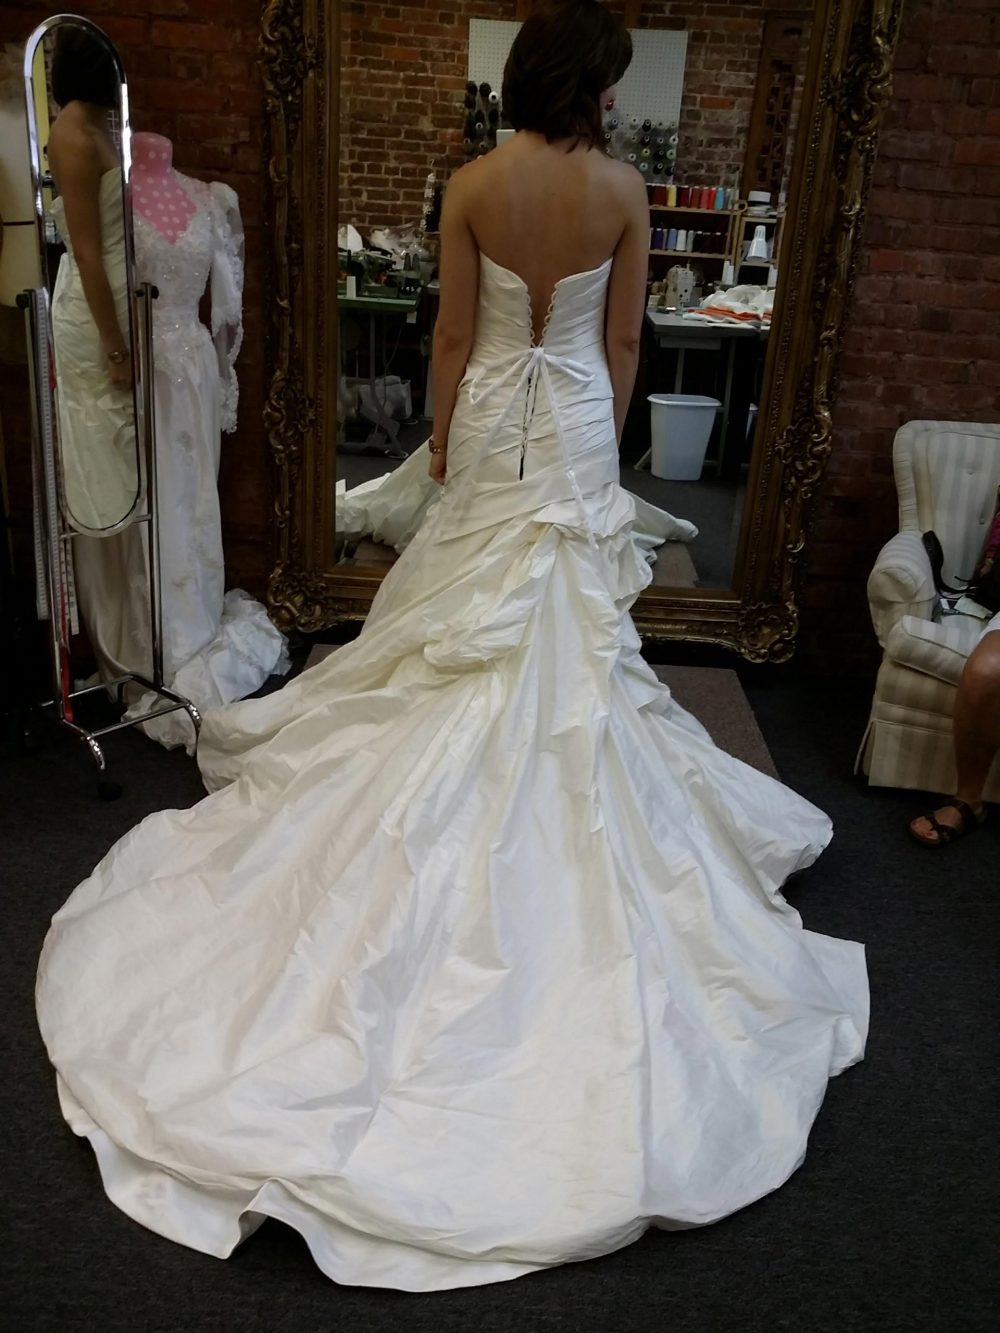 Alterations to back side of gown